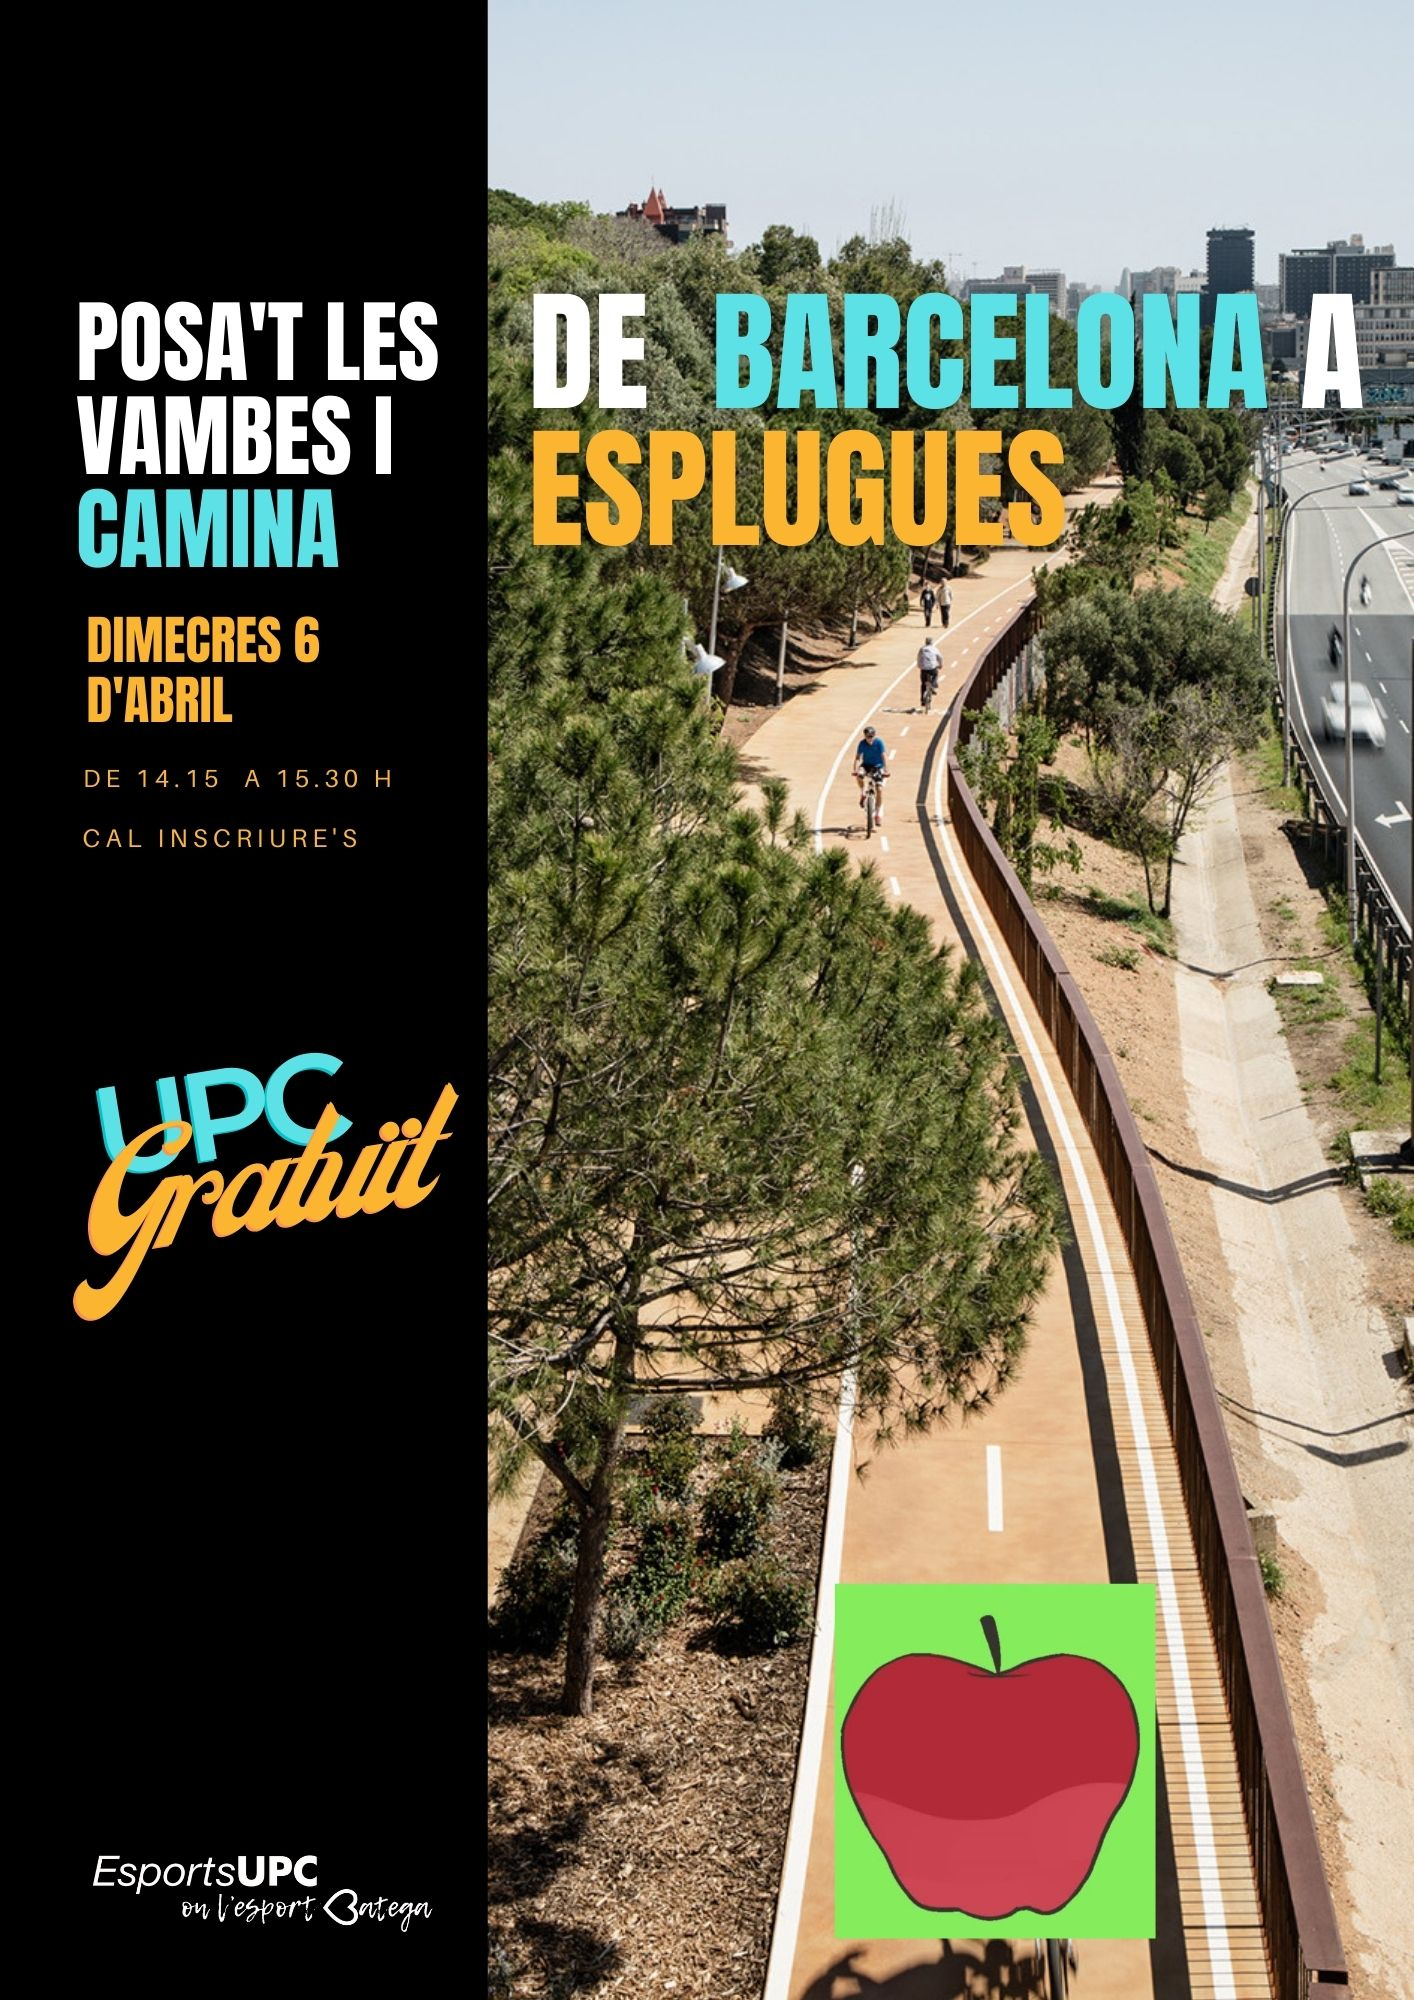 Posa't les vambes 2018-2019